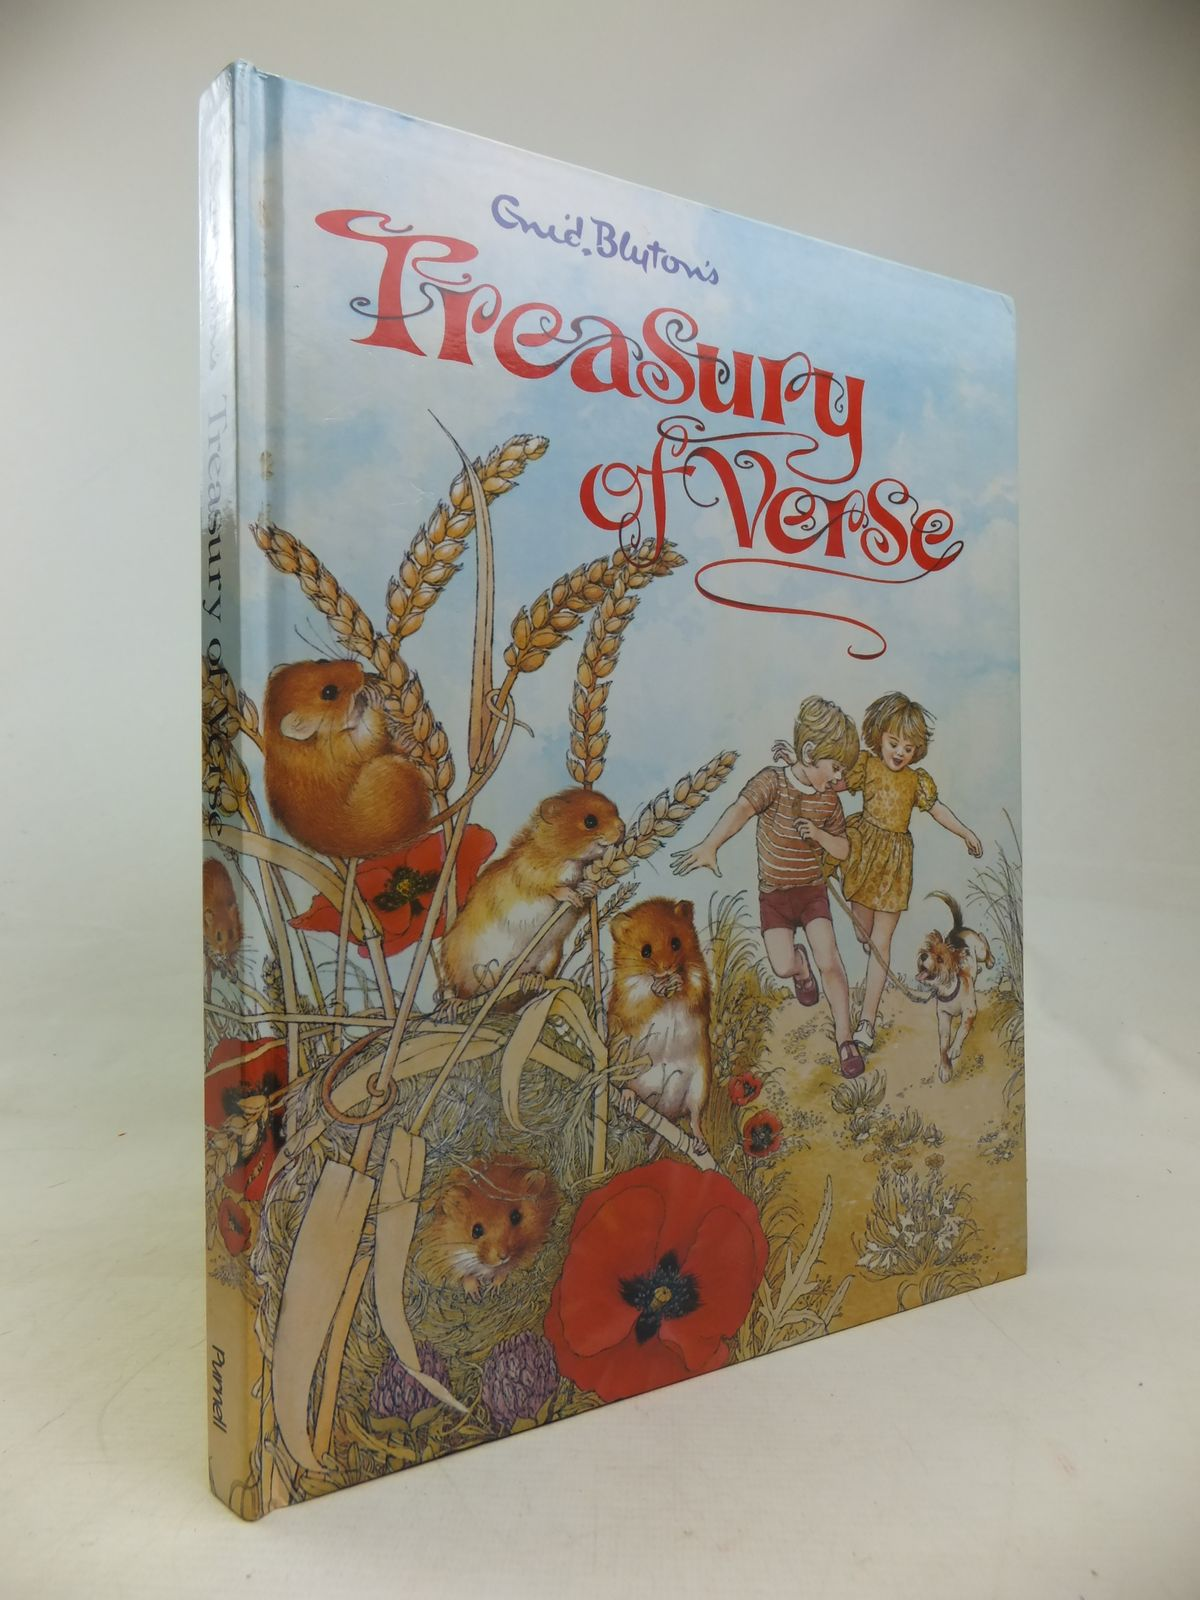 Photo of ENID BLYTON'S TREASURY OF VERSE written by Blyton, Enid published by Purnell, Macdonald & Co. (Publishers) Ltd. (STOCK CODE: 2116904)  for sale by Stella & Rose's Books